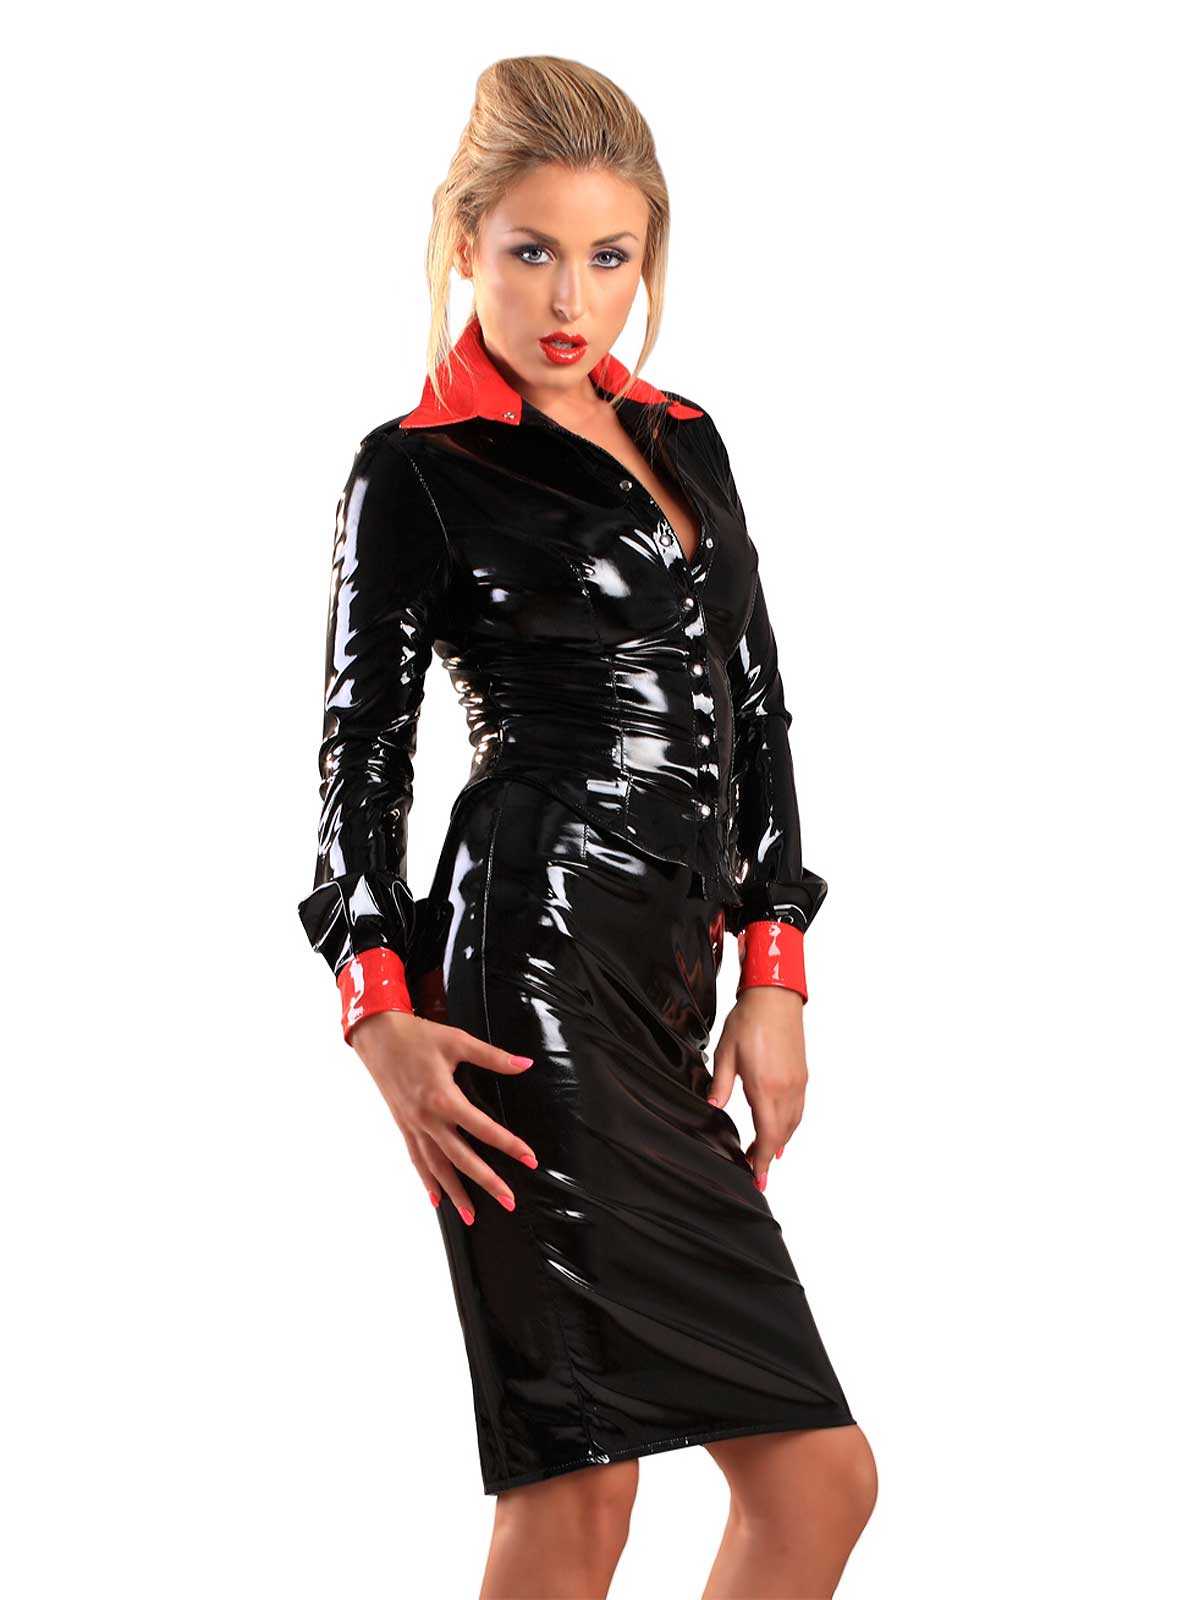 HONOUR Monroe PVC Pencil Skirt